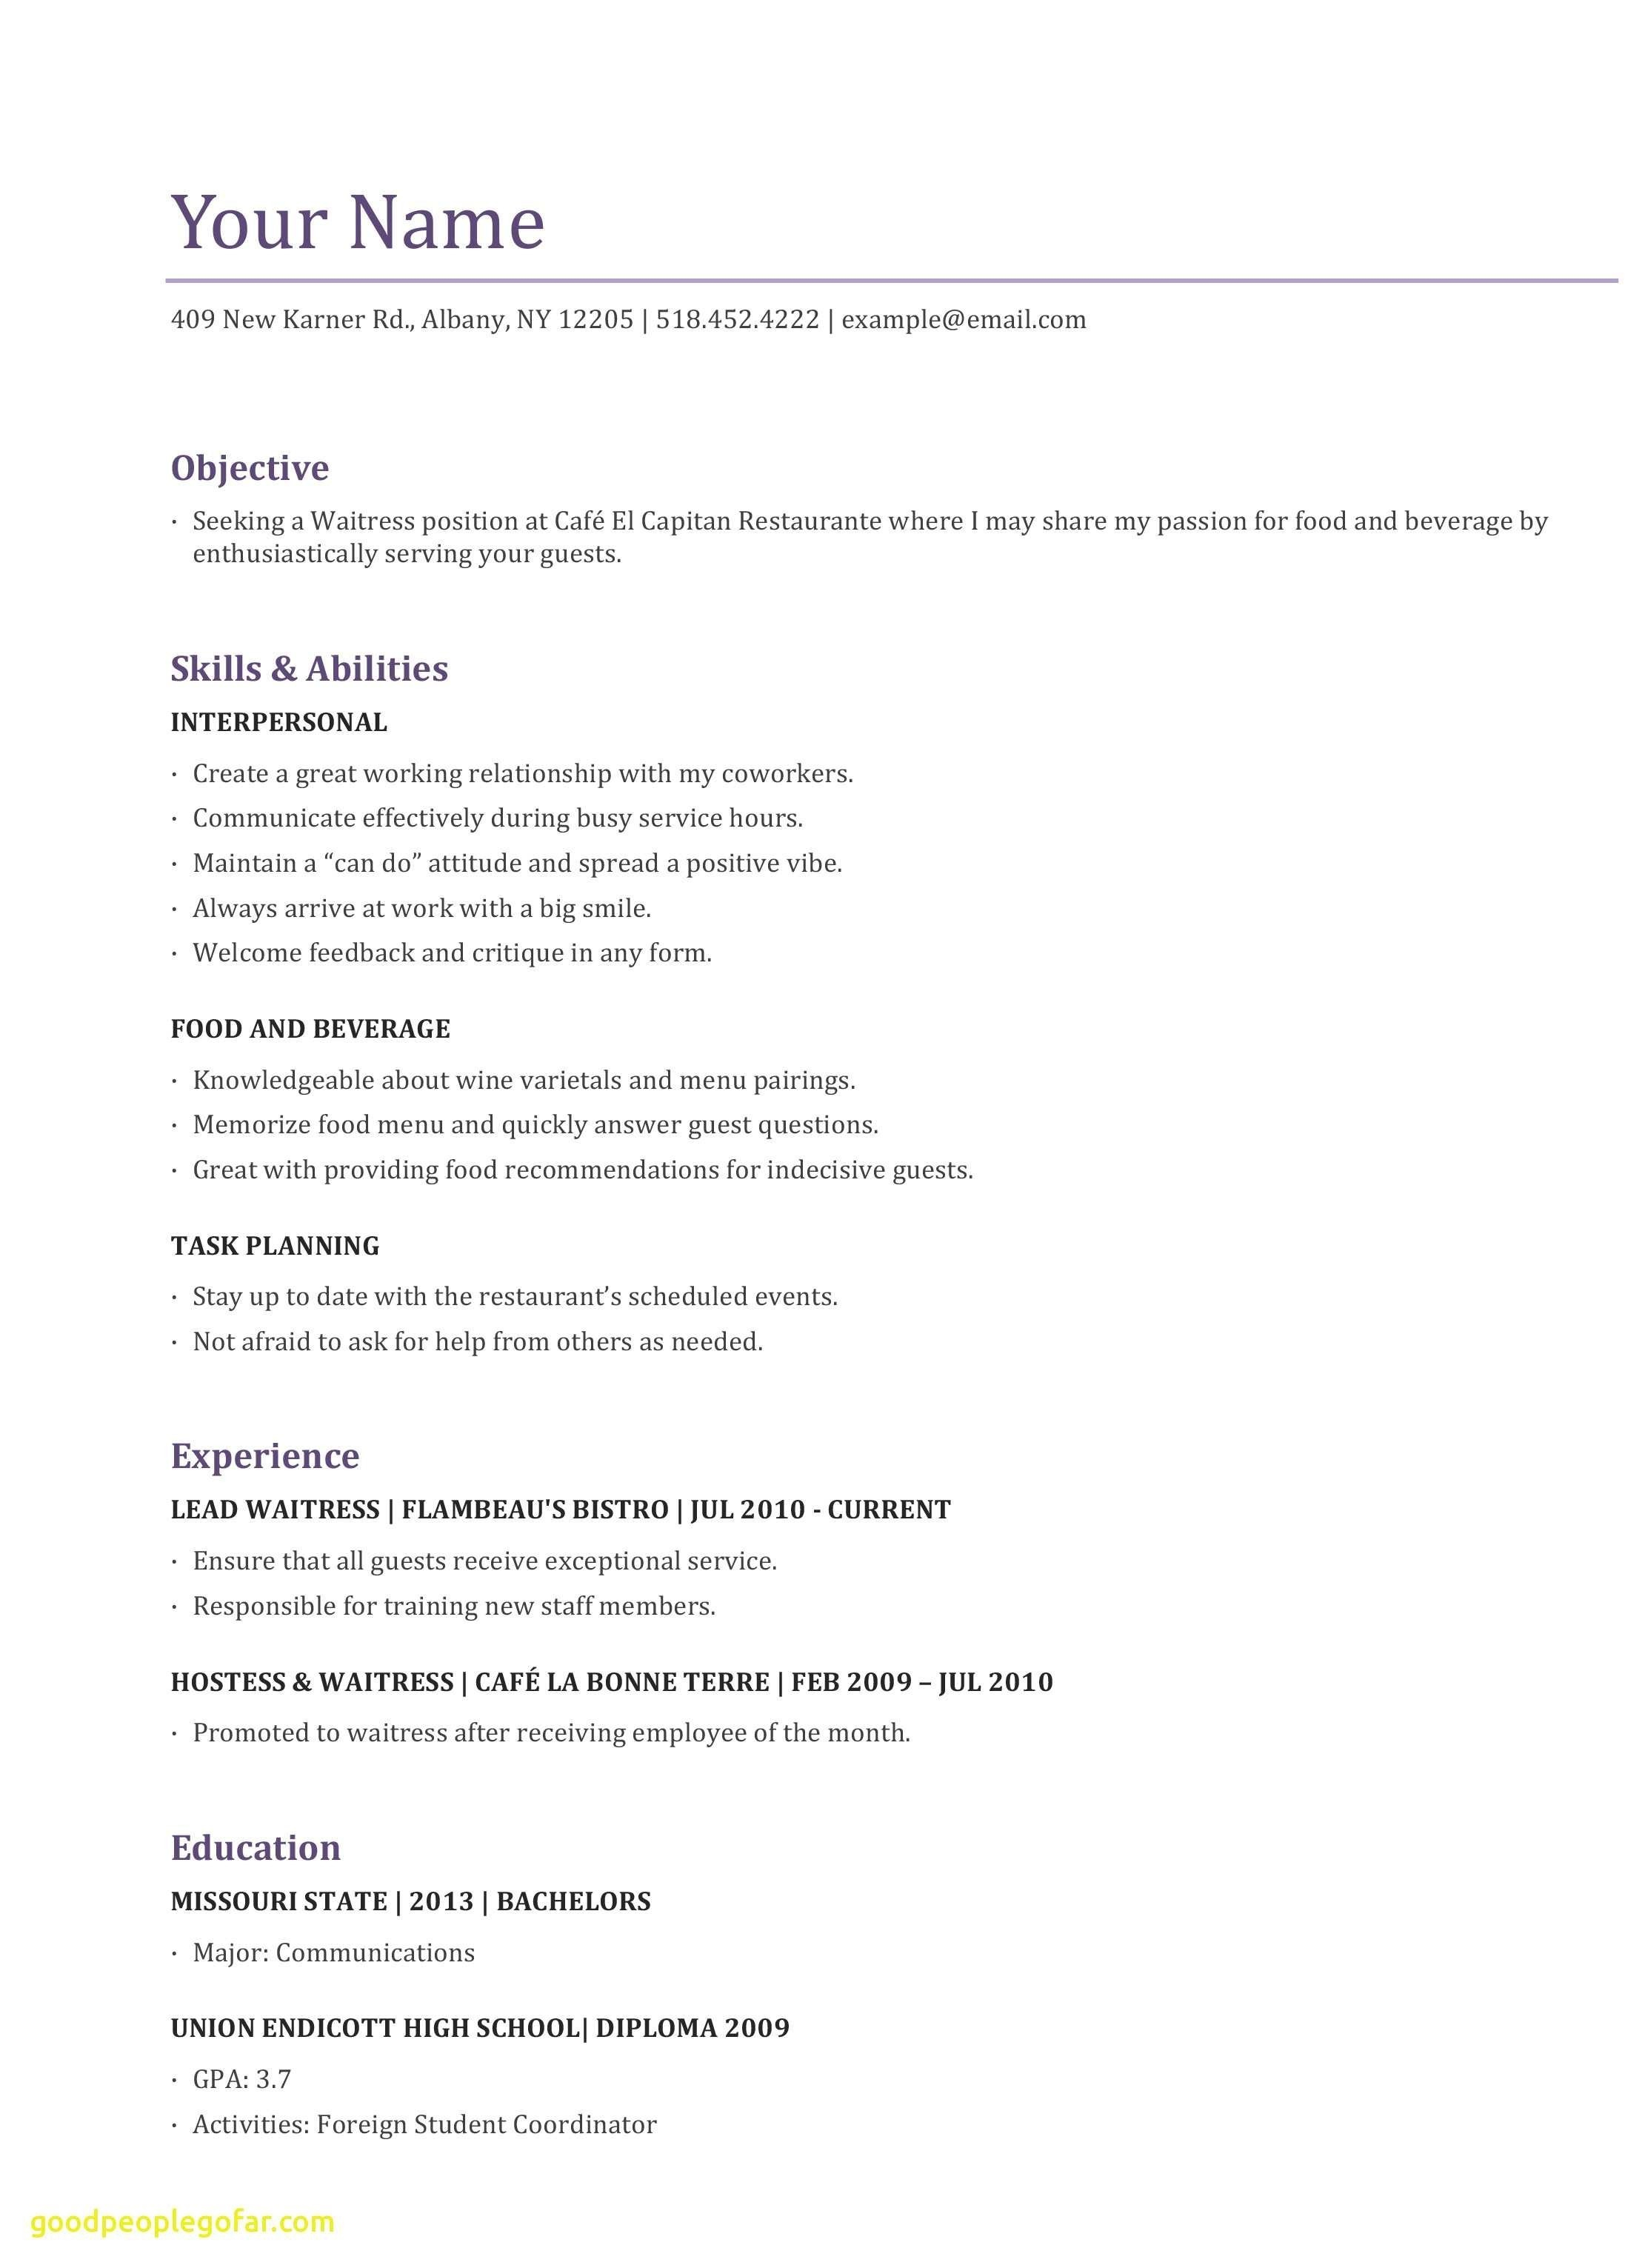 Resume Template for Waitress - Waitress Resume Examples Lovely New where Can I Get A Resume Unique